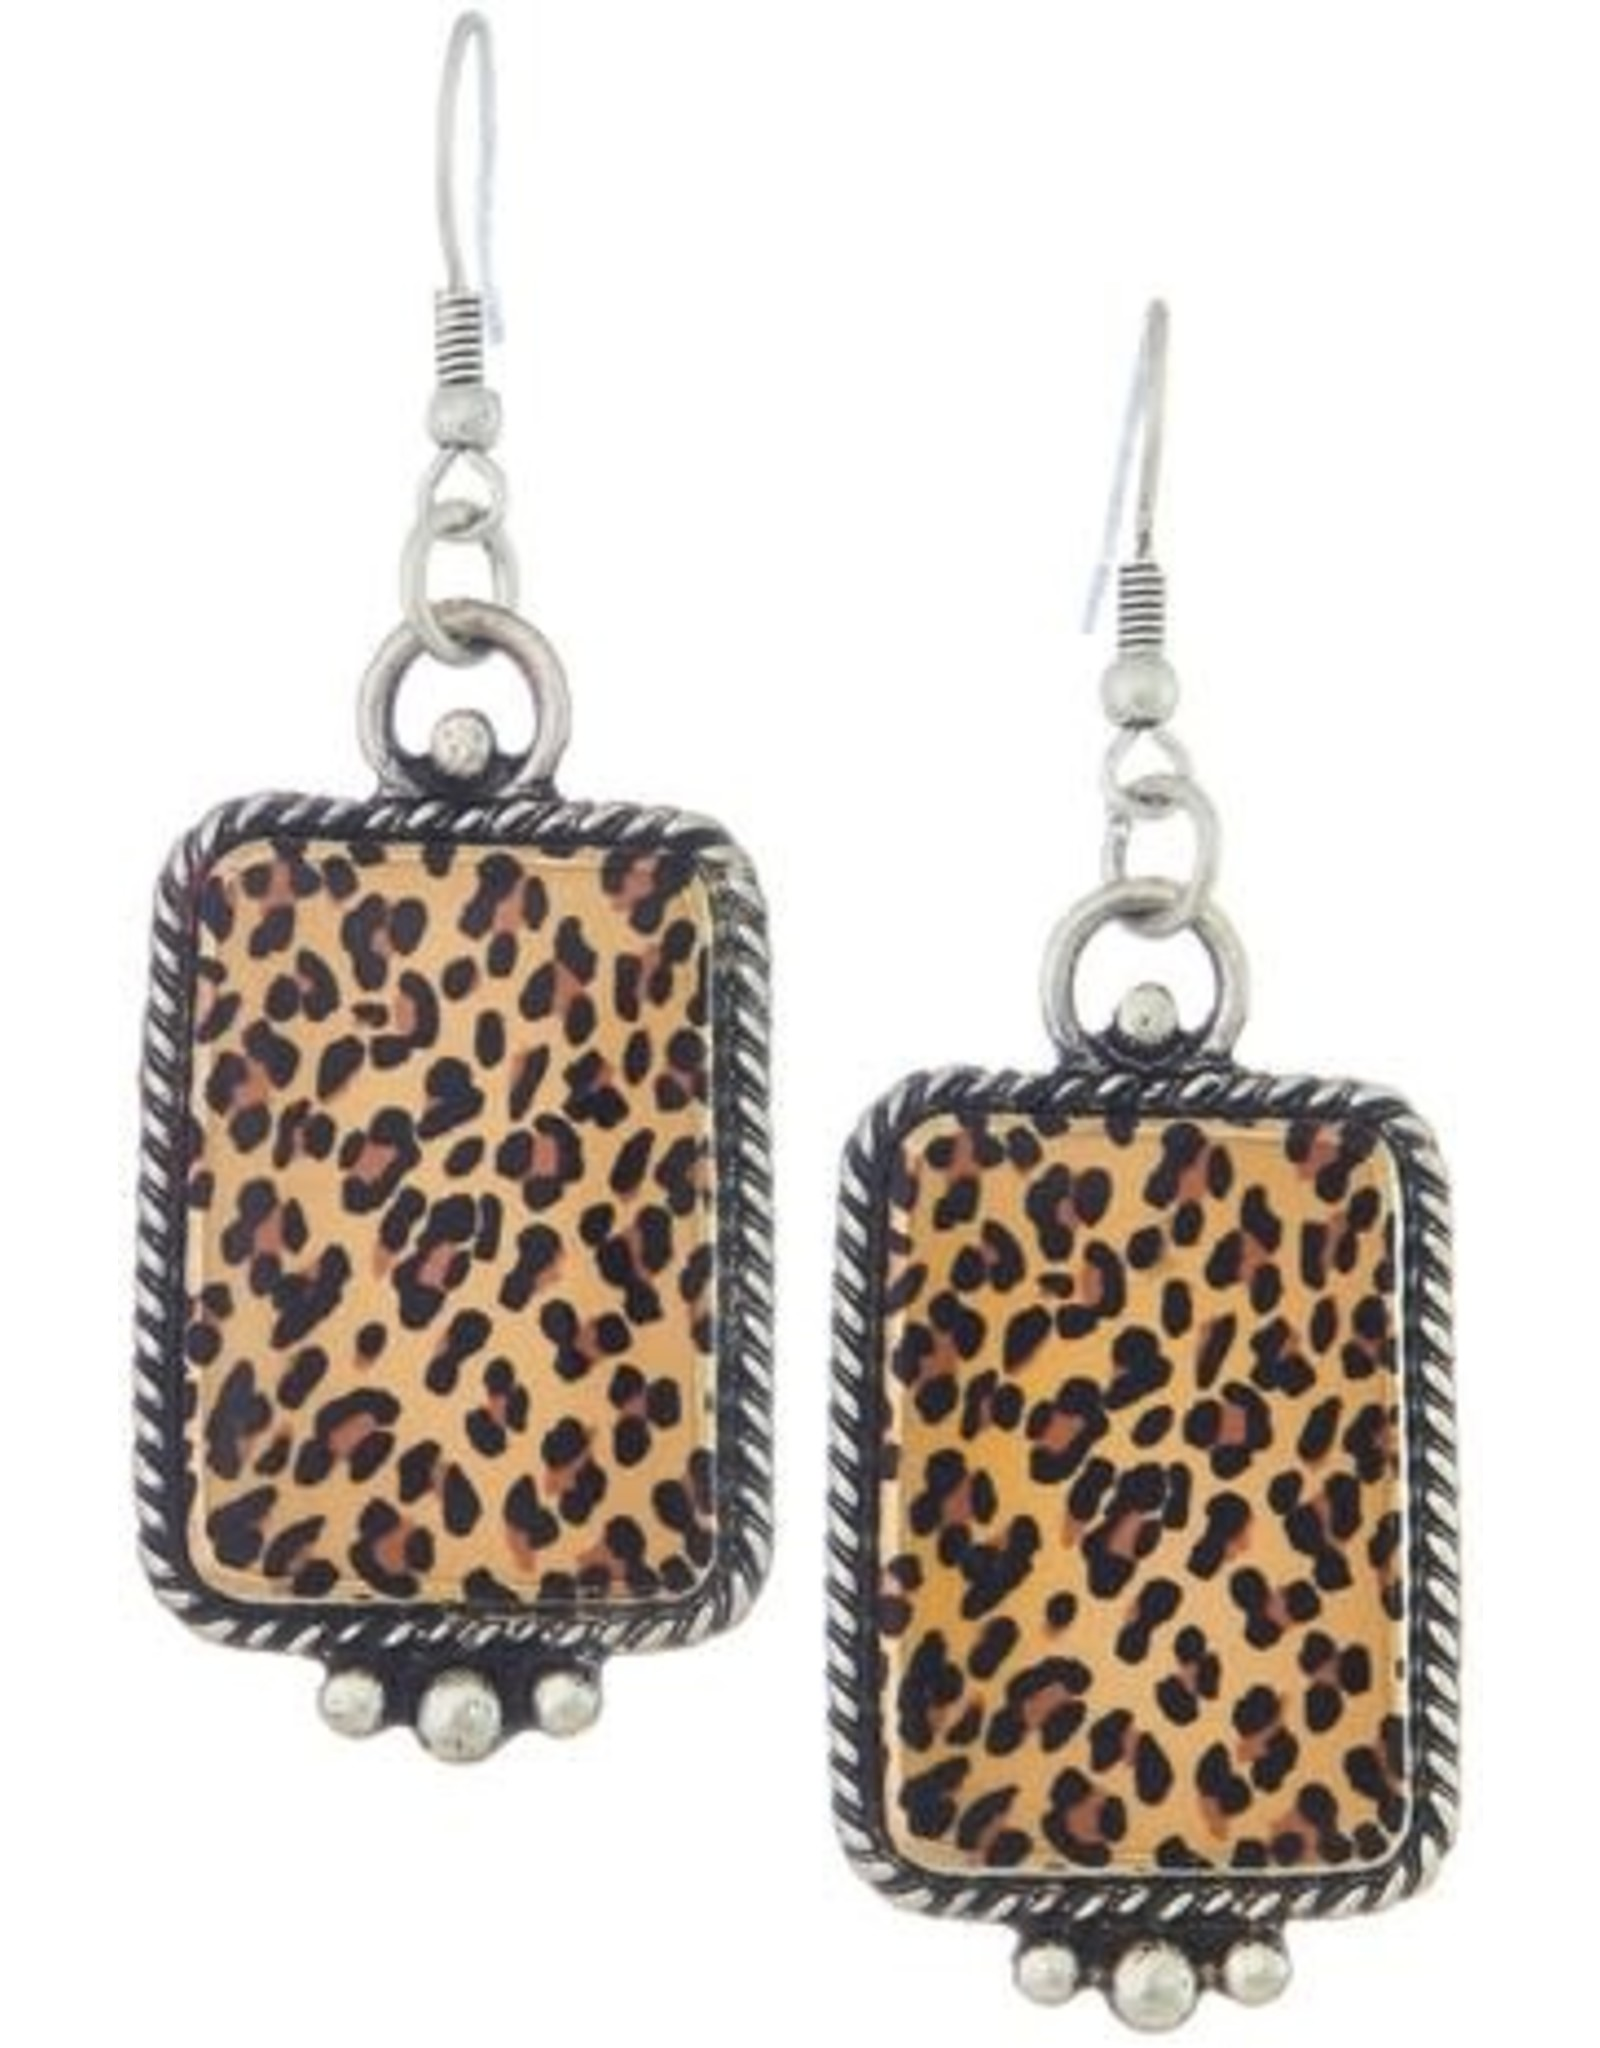 METAL DROP EARRINGS WITH LEOPARD PRINT